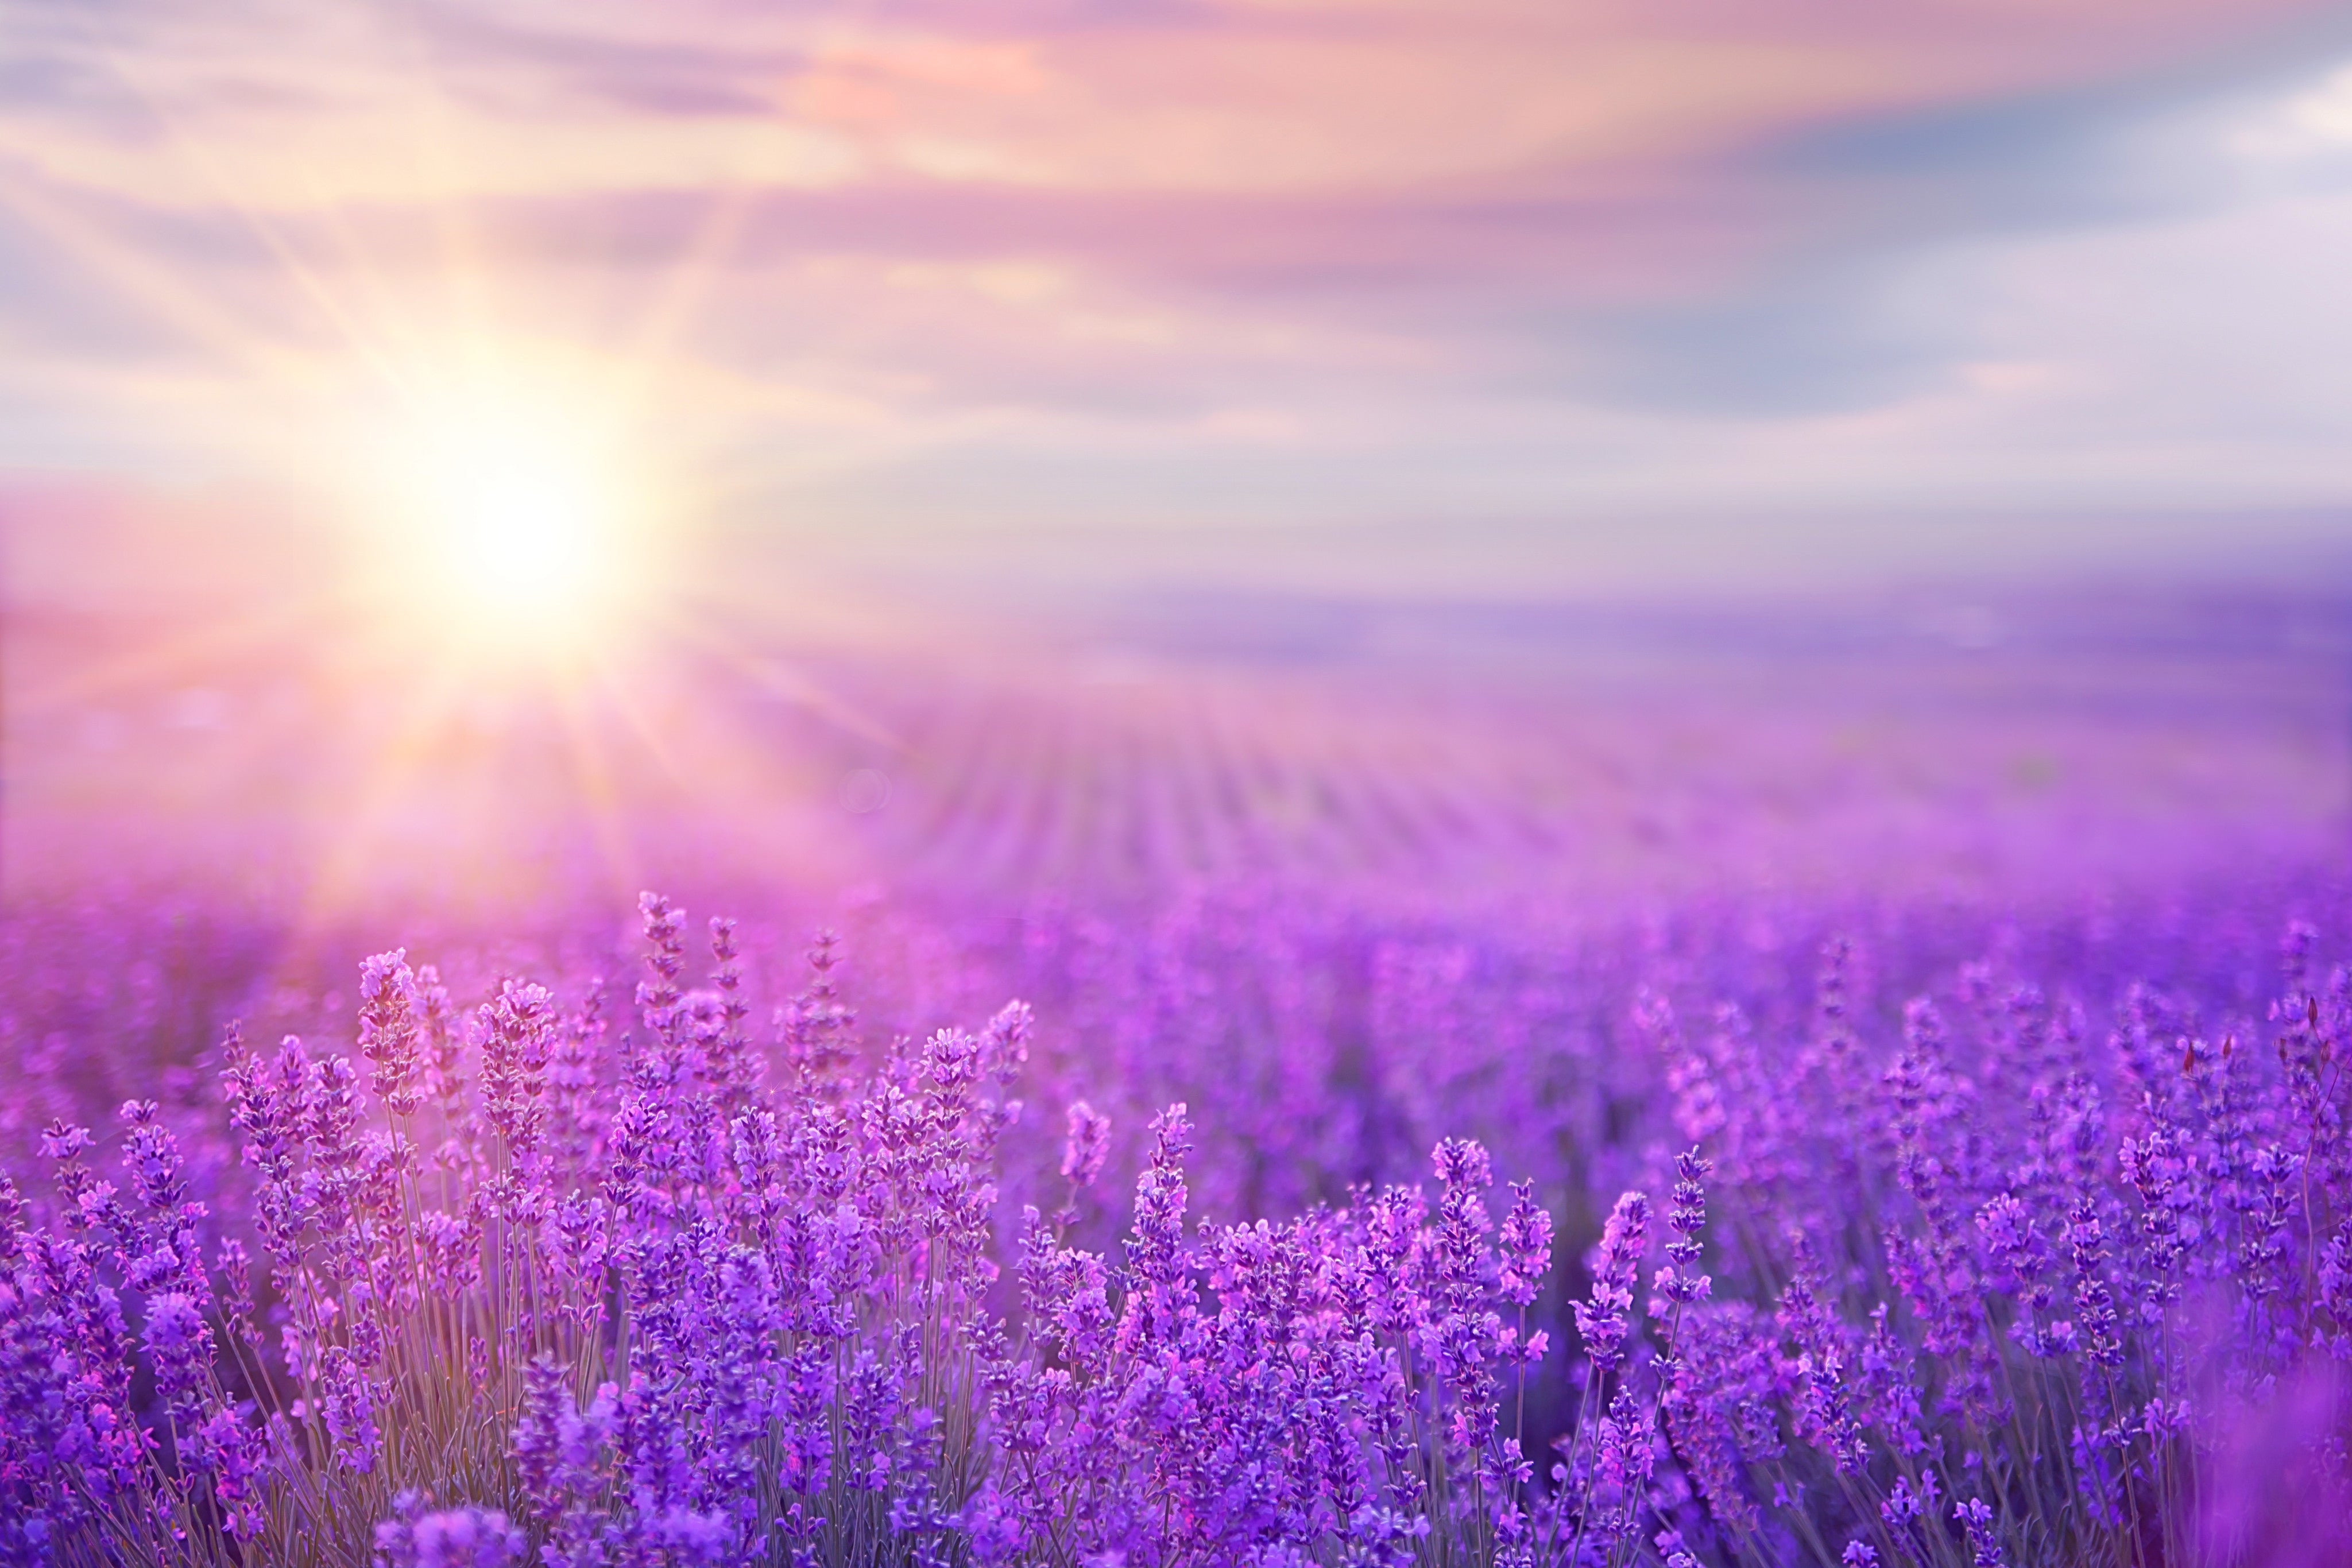 What's Behind Your Carole's Candle? The Benefits of Aromatherapy (Lavender)